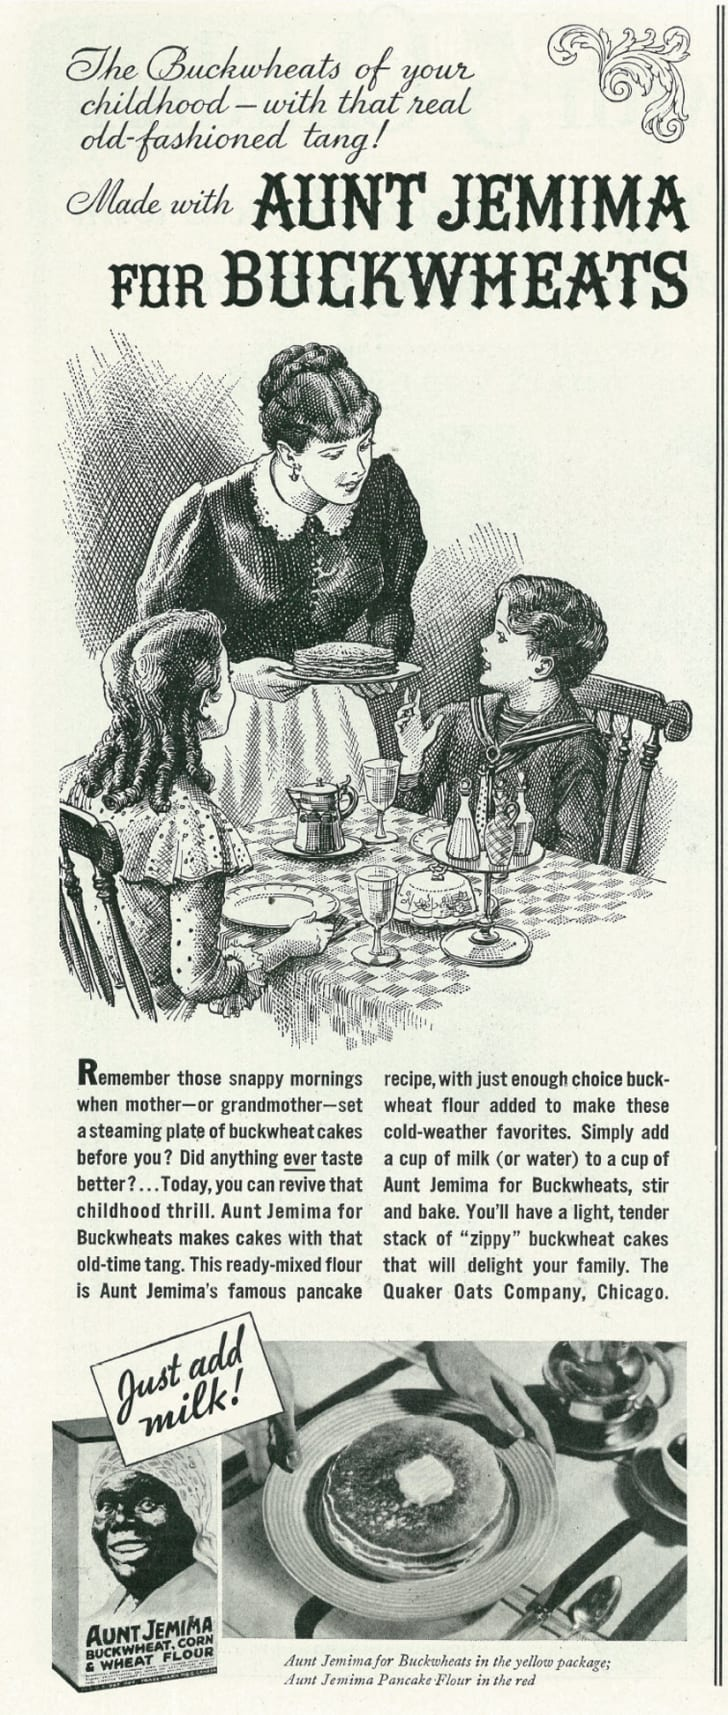 A magazine ad for Aunt Jemima pancake mix, 1934